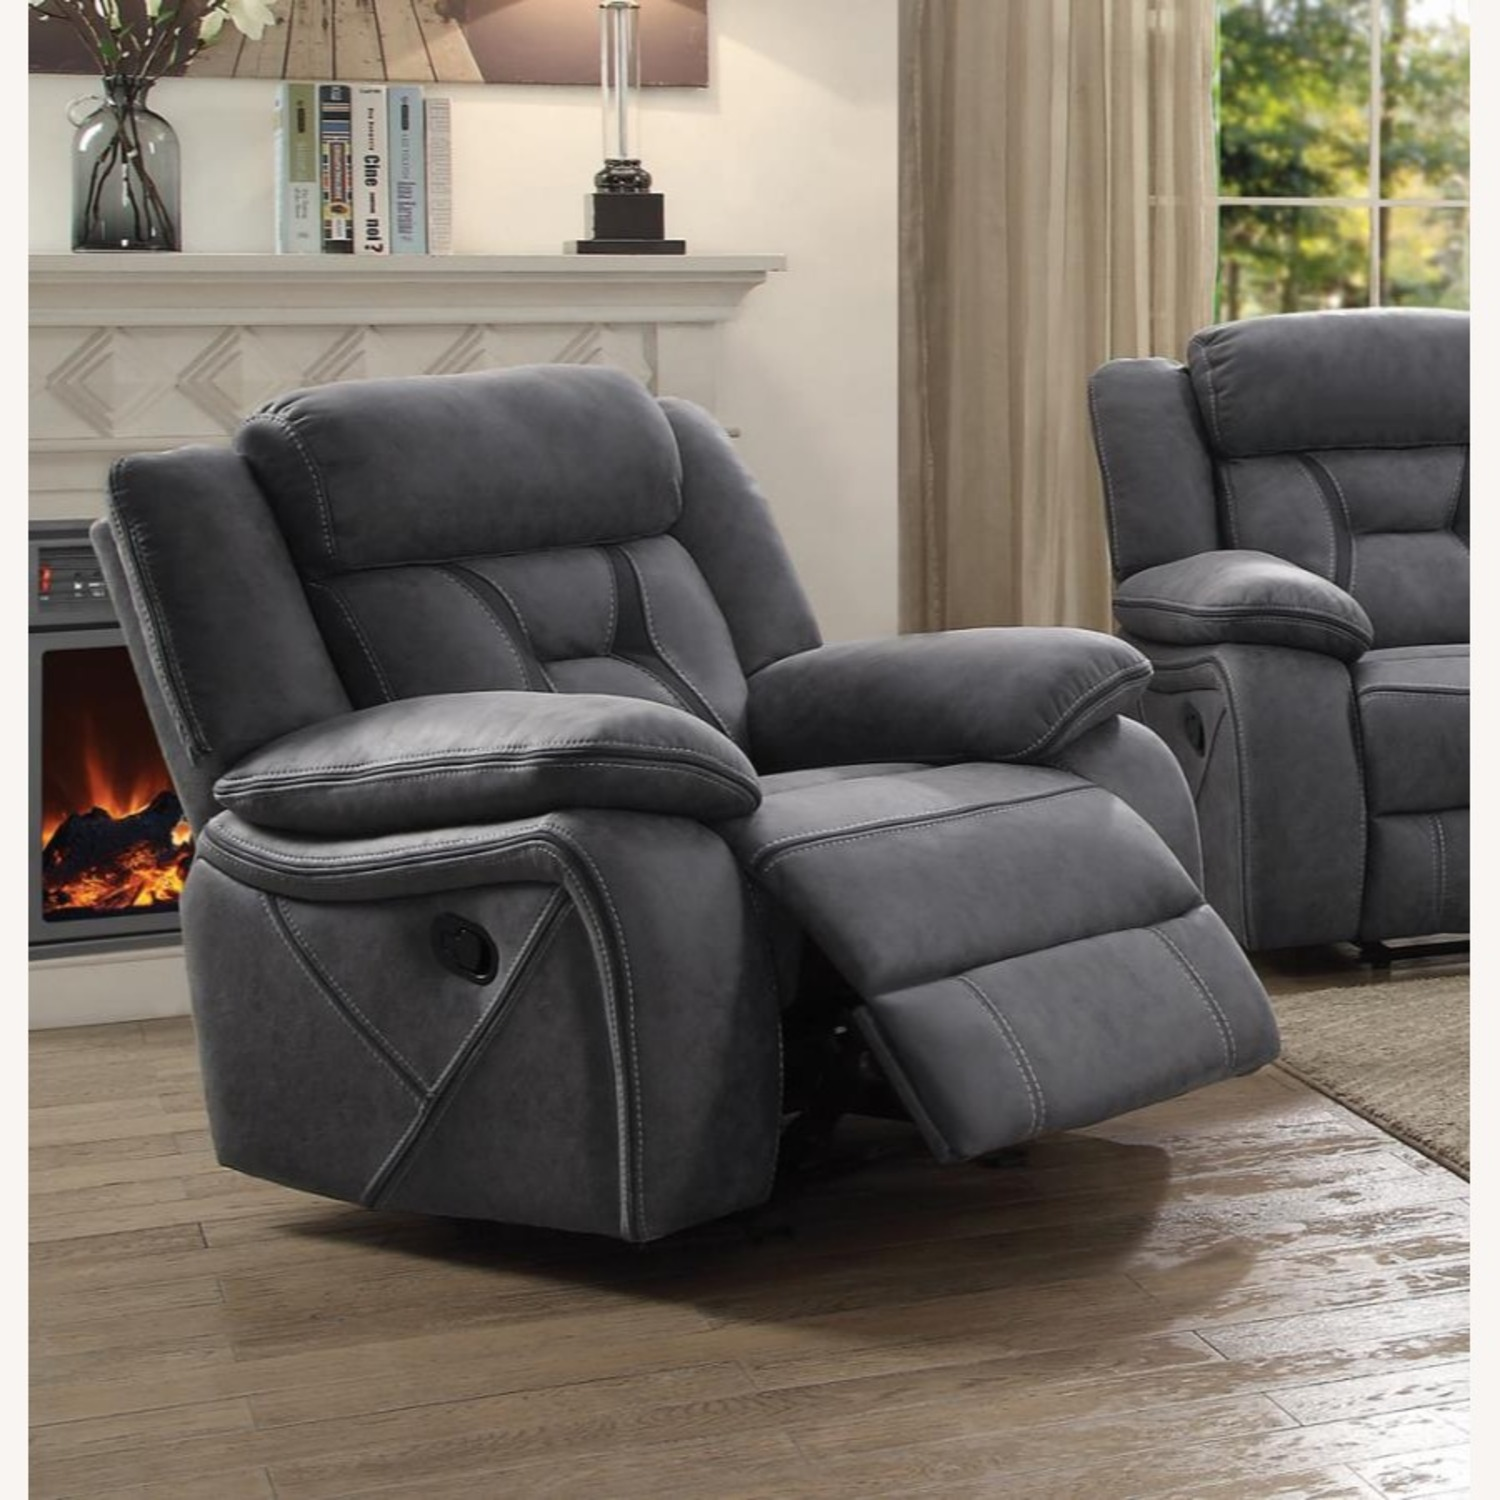 Glider Recliner Chair In Grey Suede Fabric - image-4